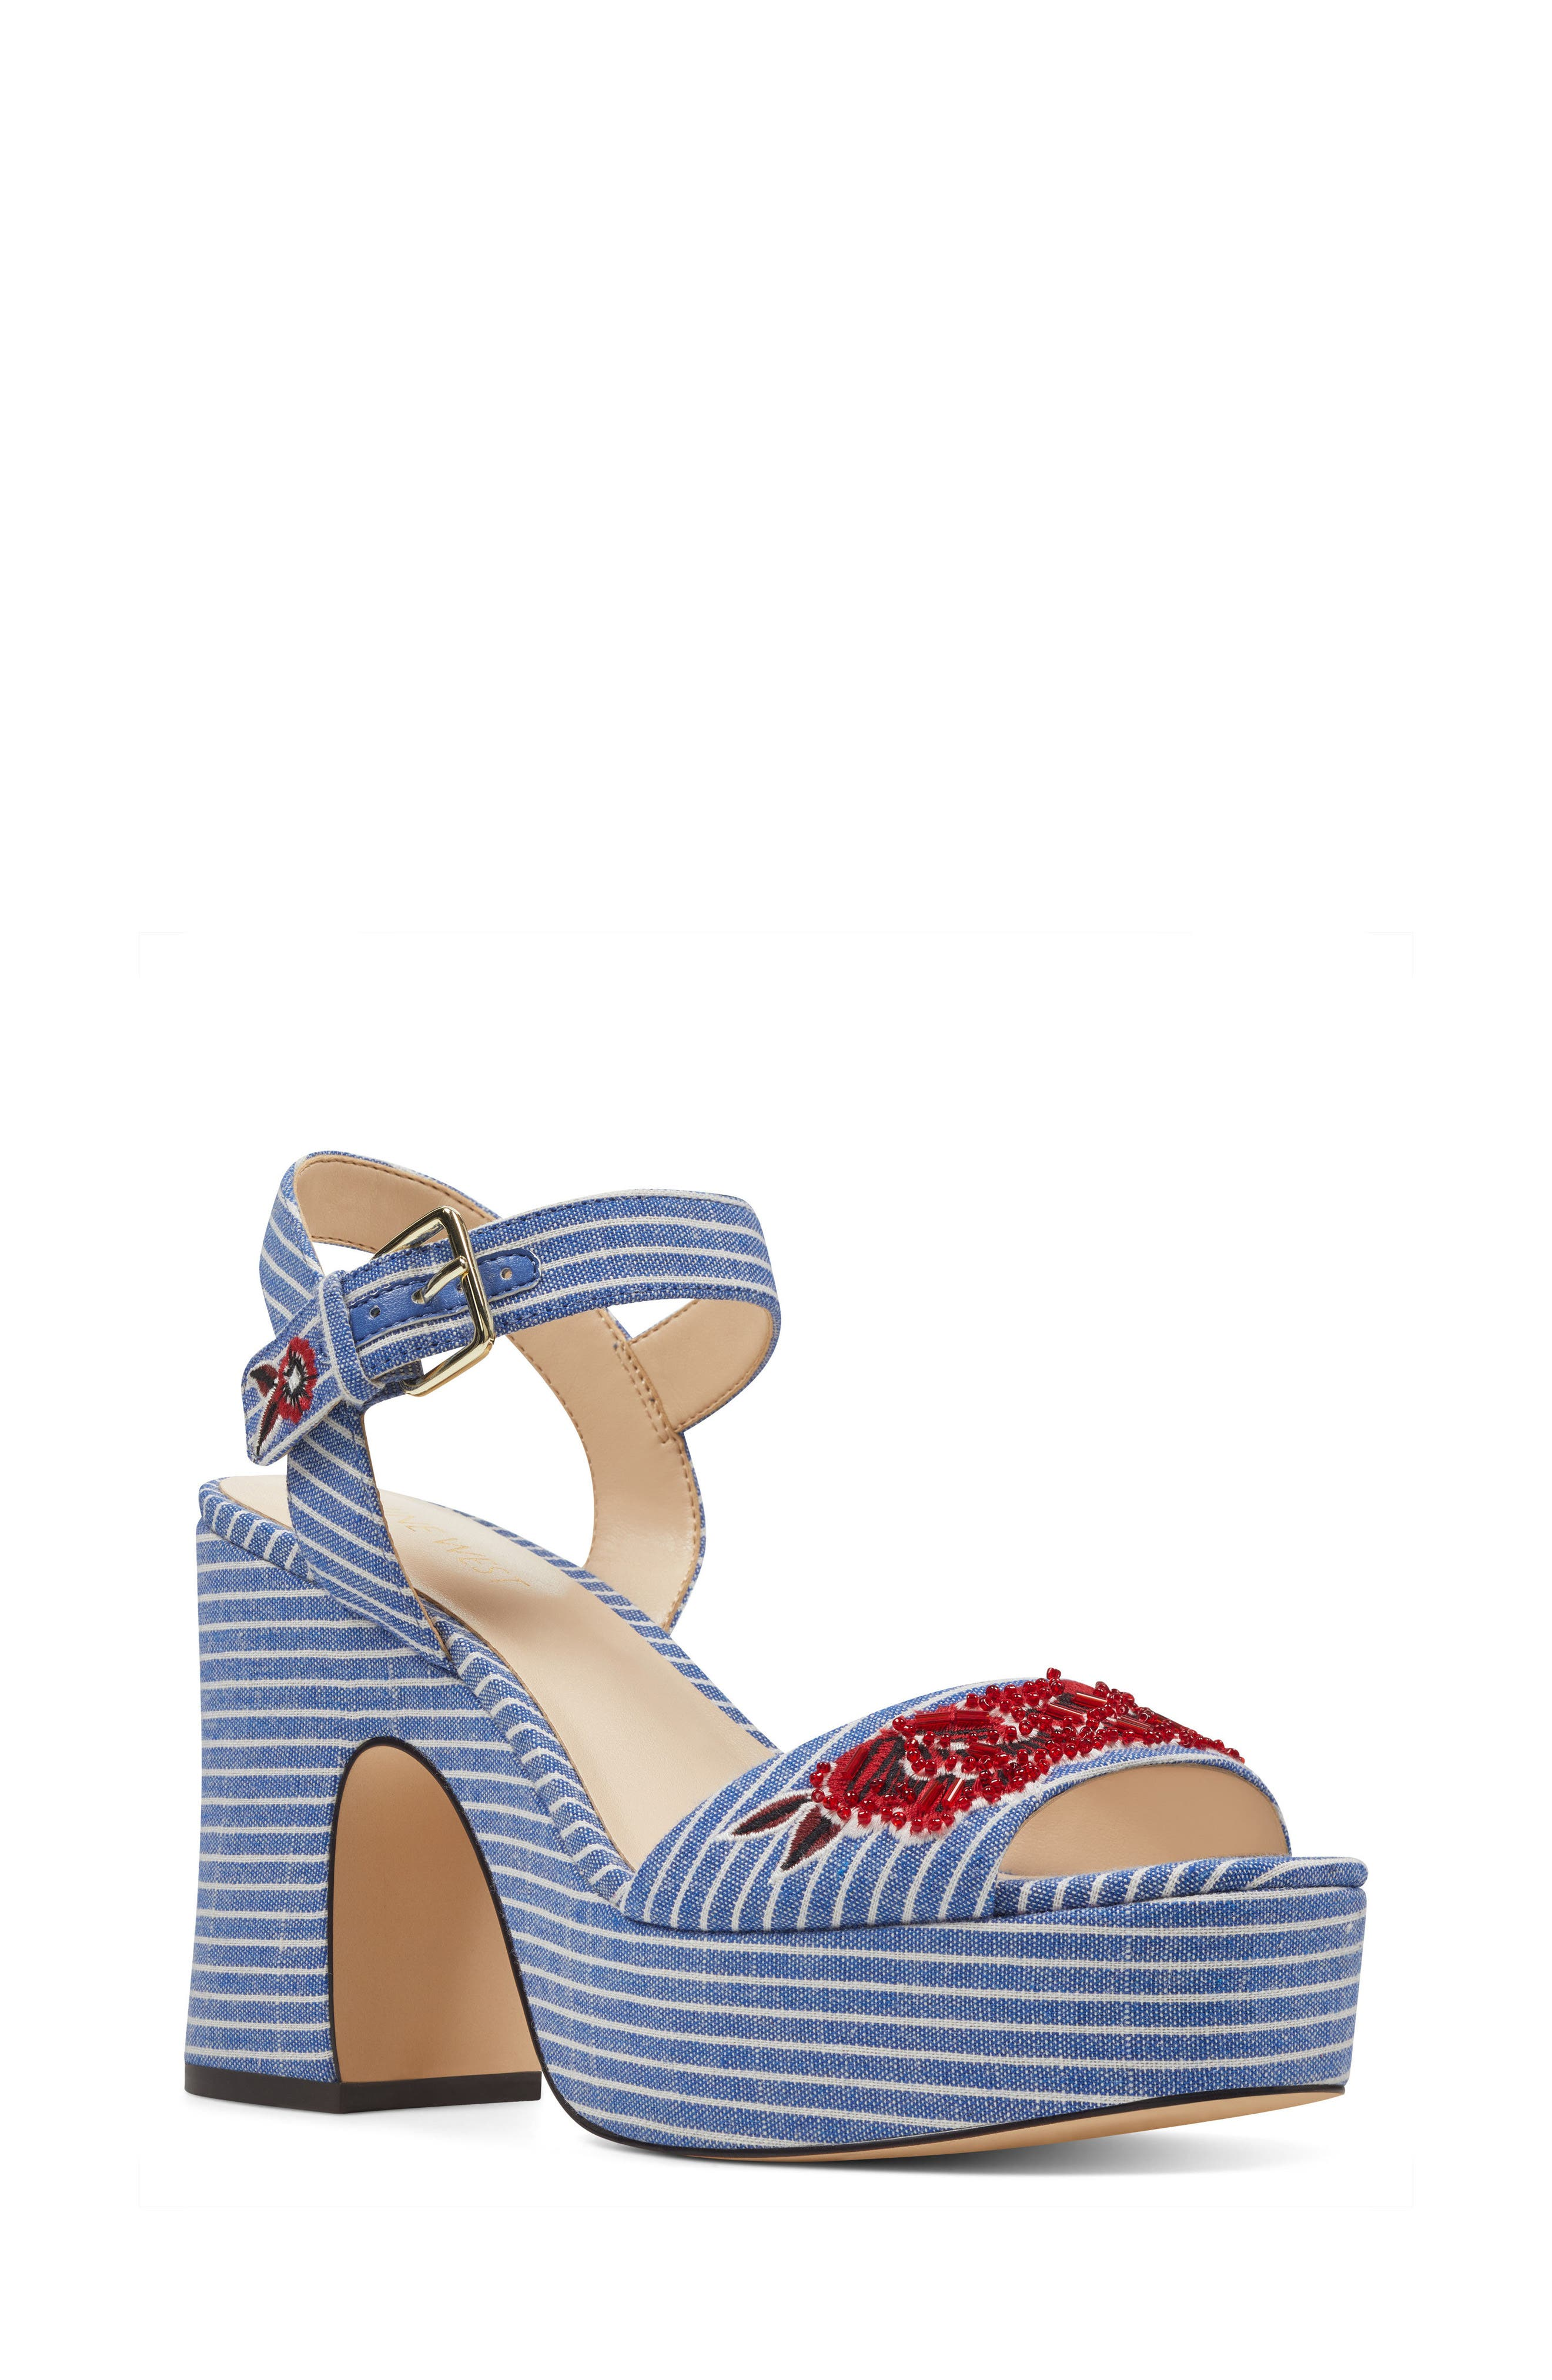 Fontayah Platform Sandal,                         Main,                         color, 400